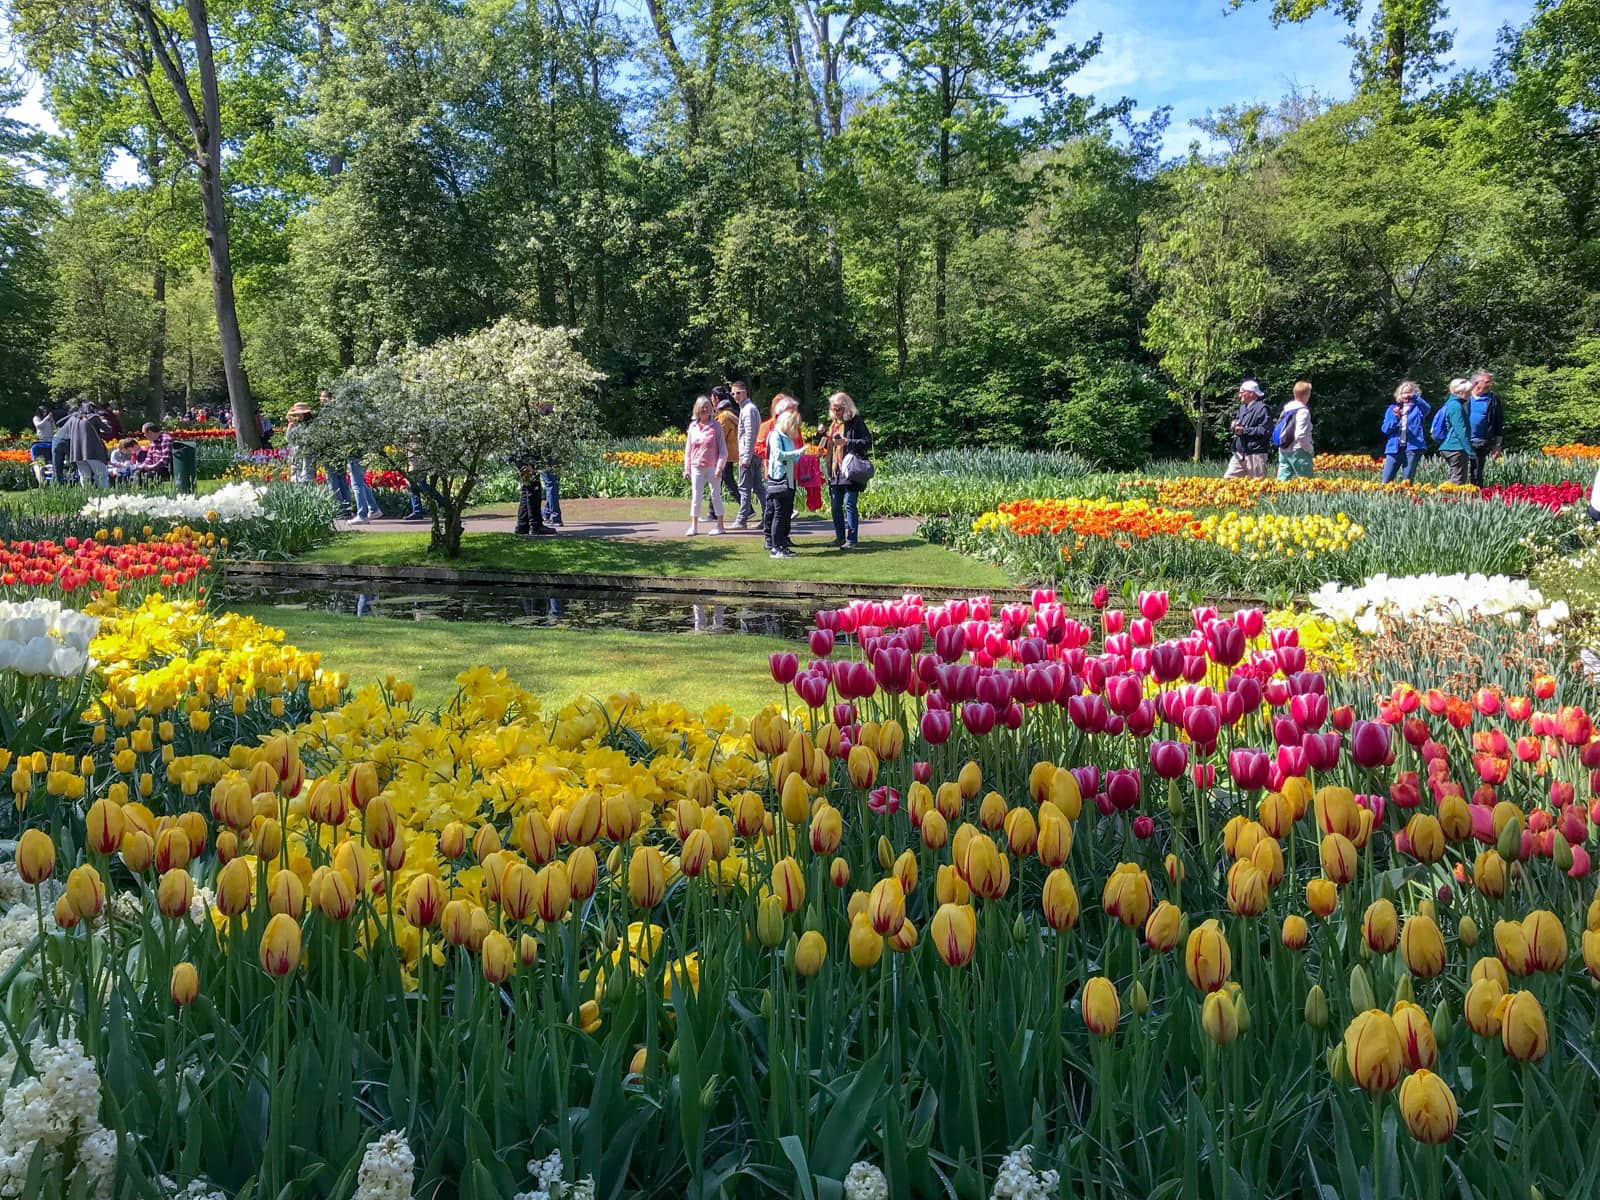 A very green garden with many plantations of neon-coloured tulips in red, pink, orange, yellow, and white. There are some people walking around observing the tulips